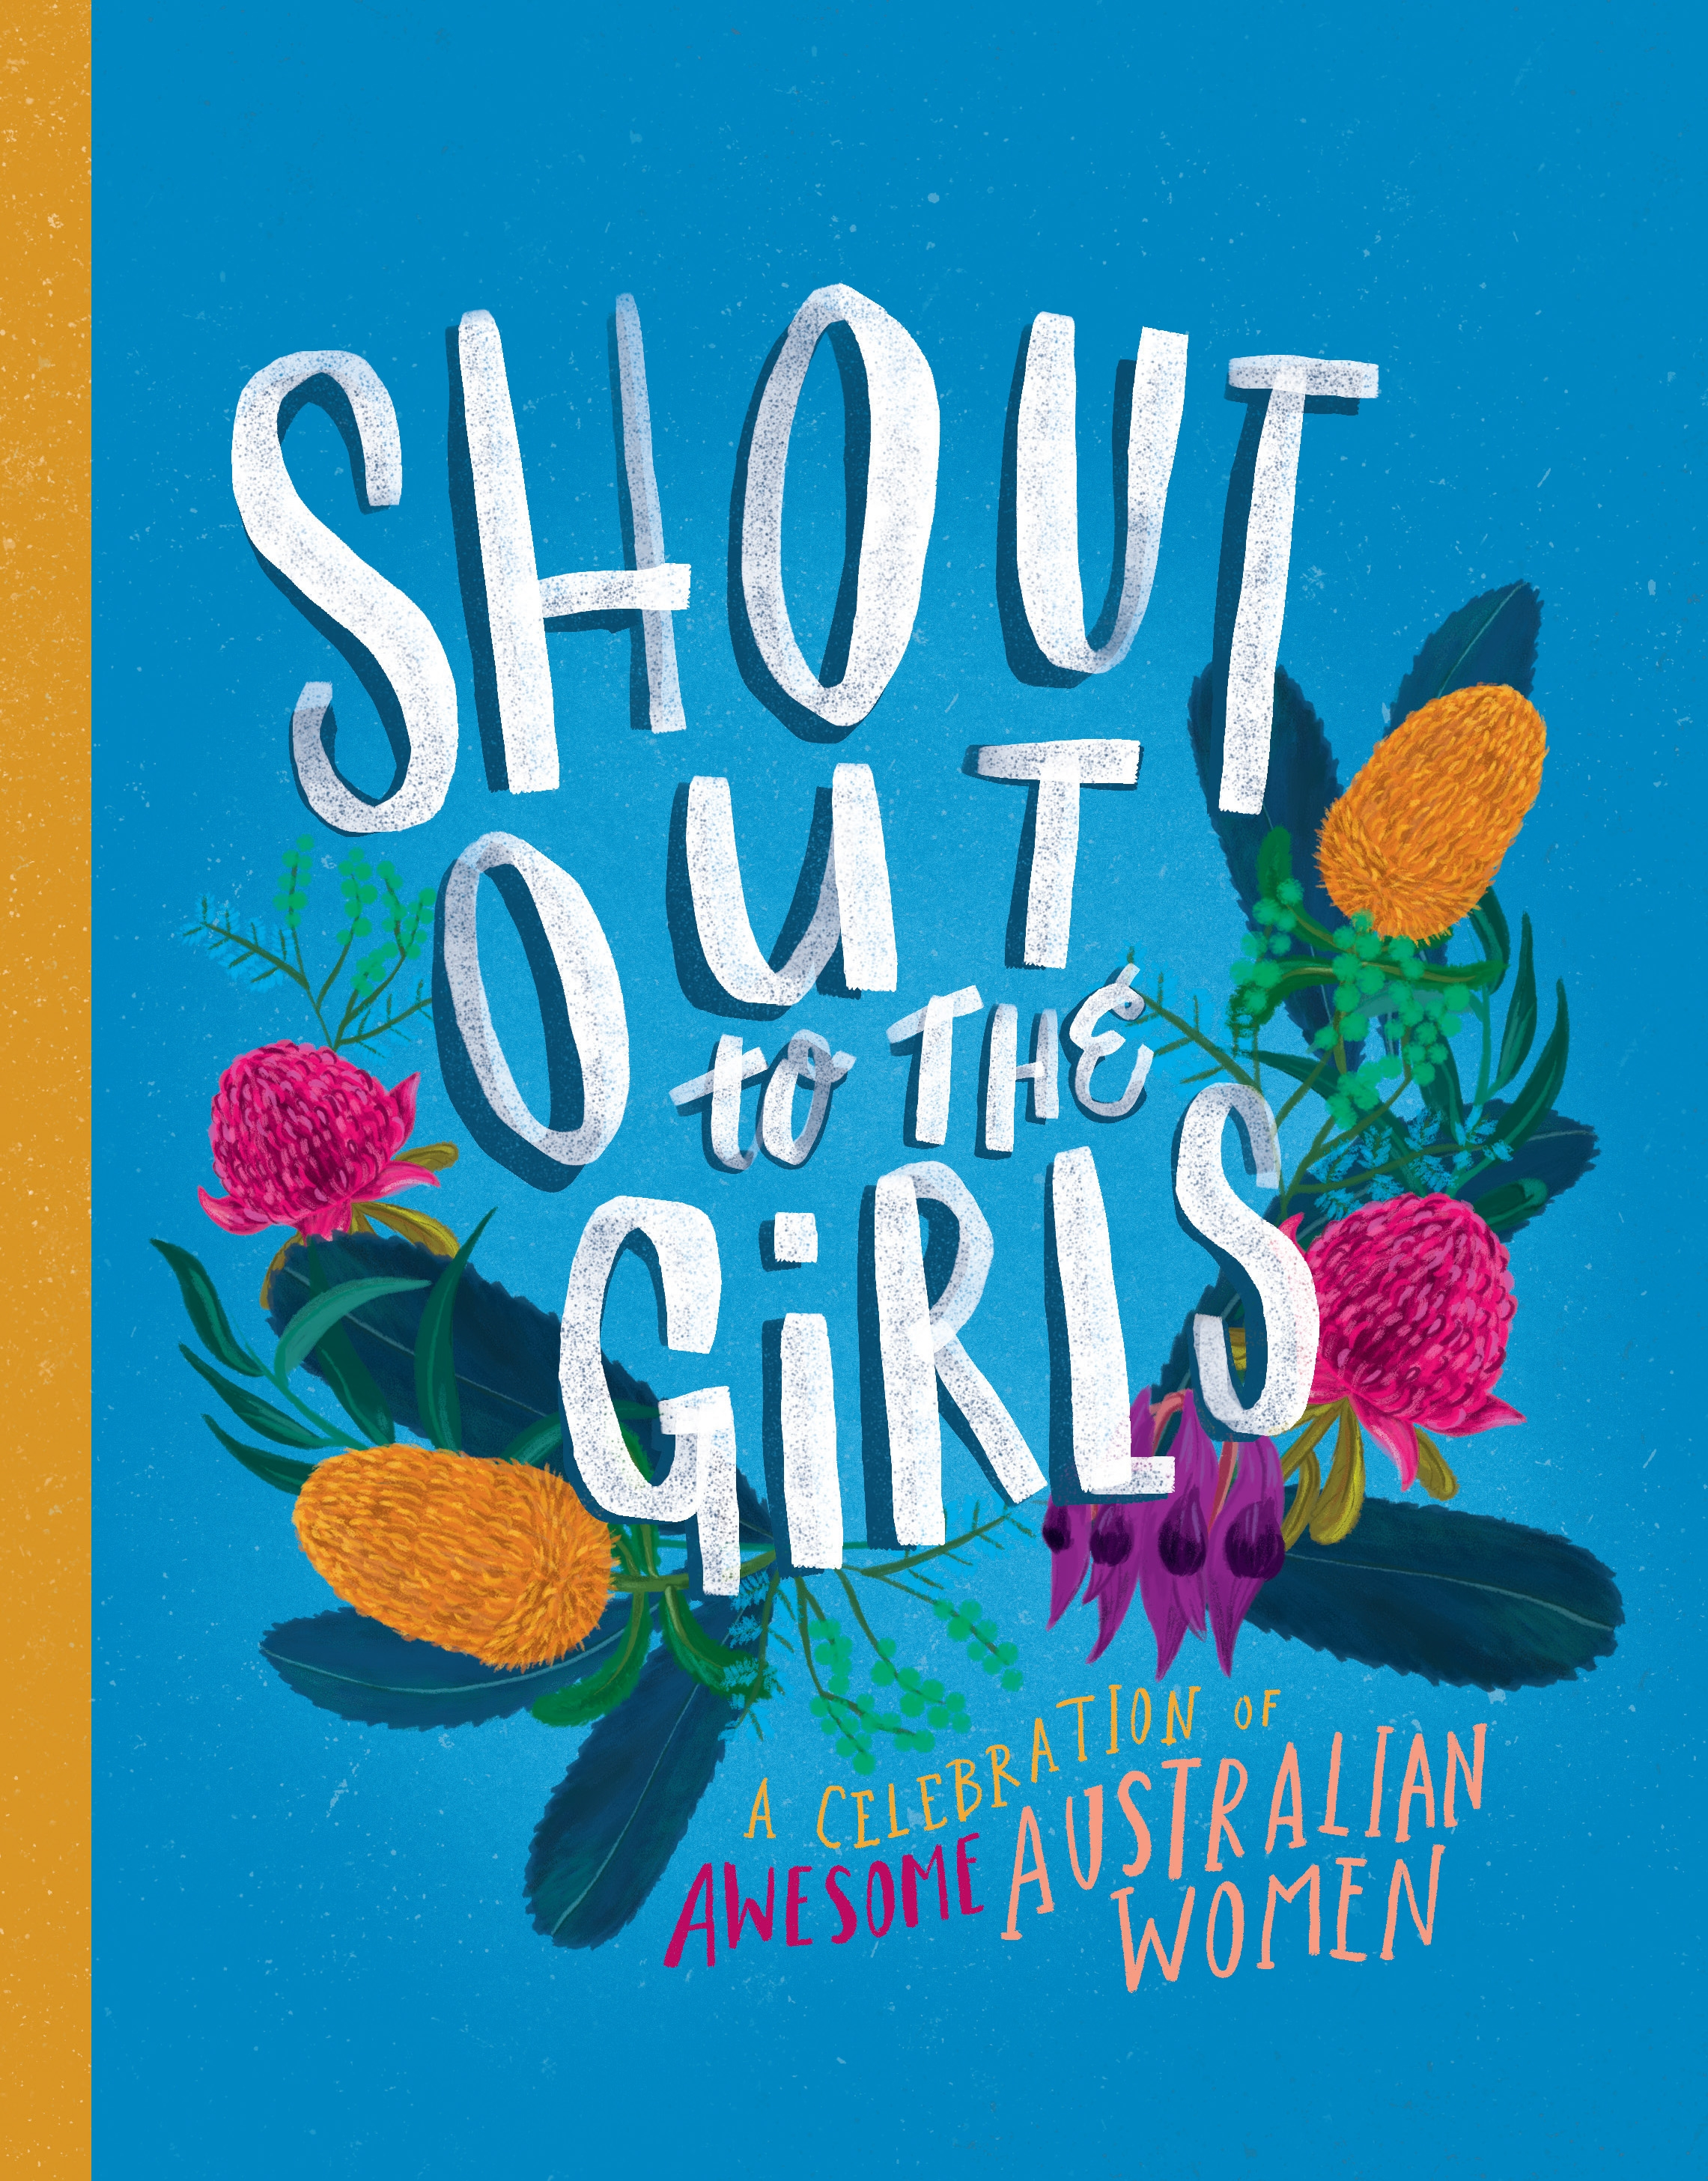 Shout out to the girls : a celebration of awesome Australian women.